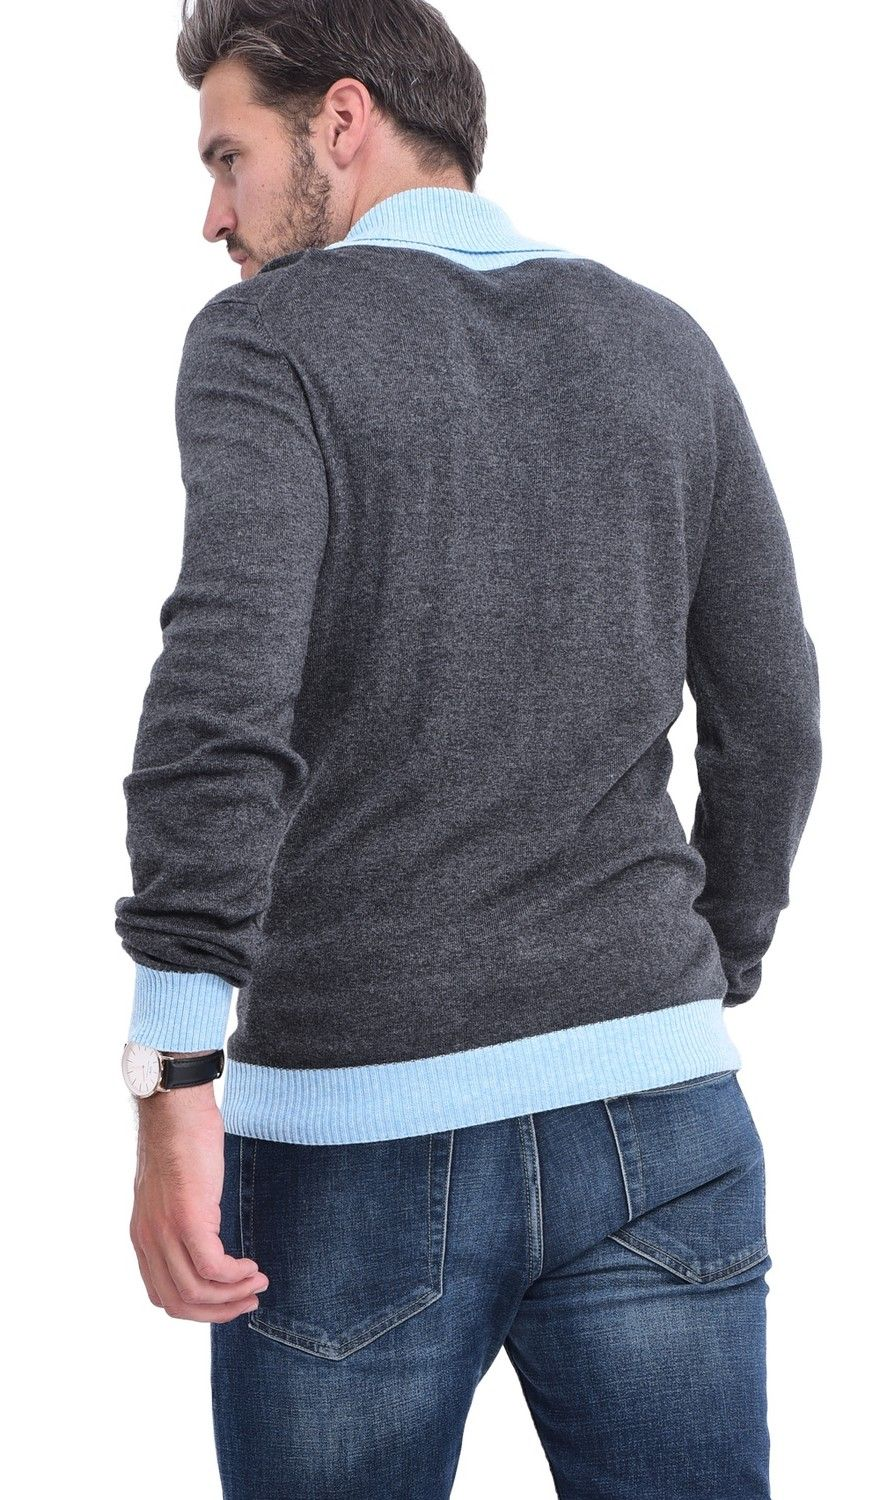 C&JO Two-tone Shawl Collar Sweater in Grey